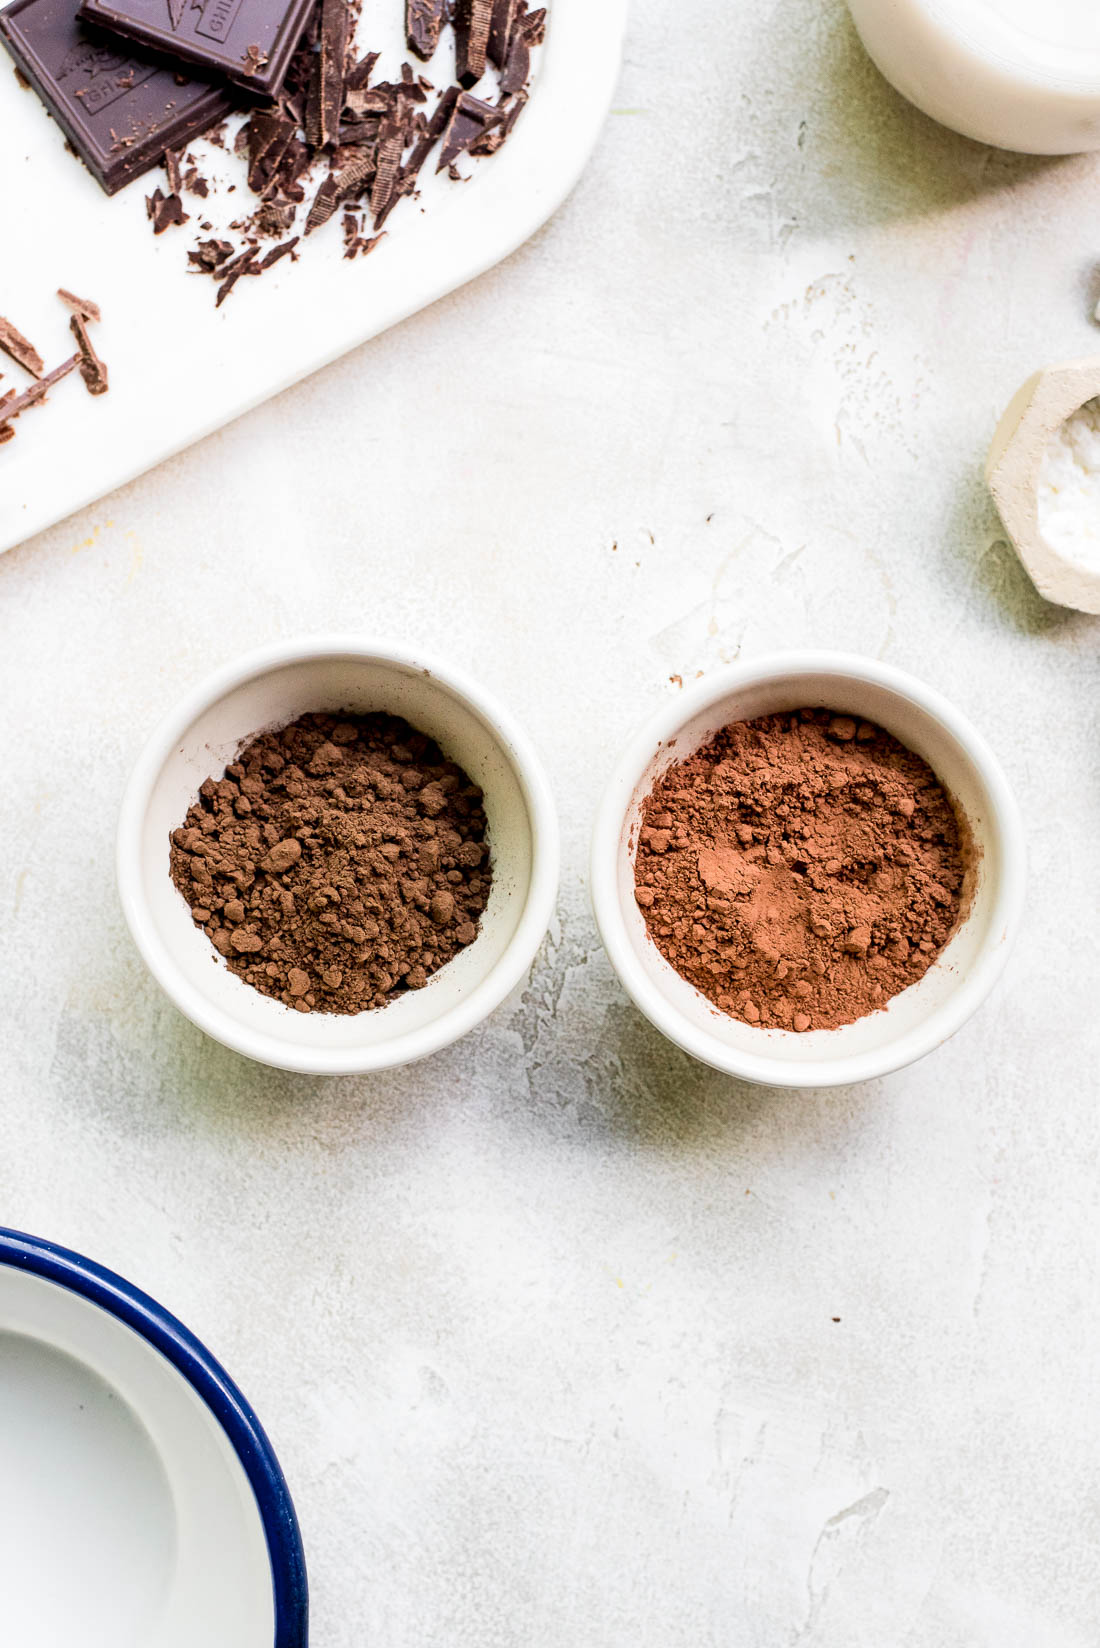 two small bowls filled with natural cocoa powder and dutch processed cocoa powder